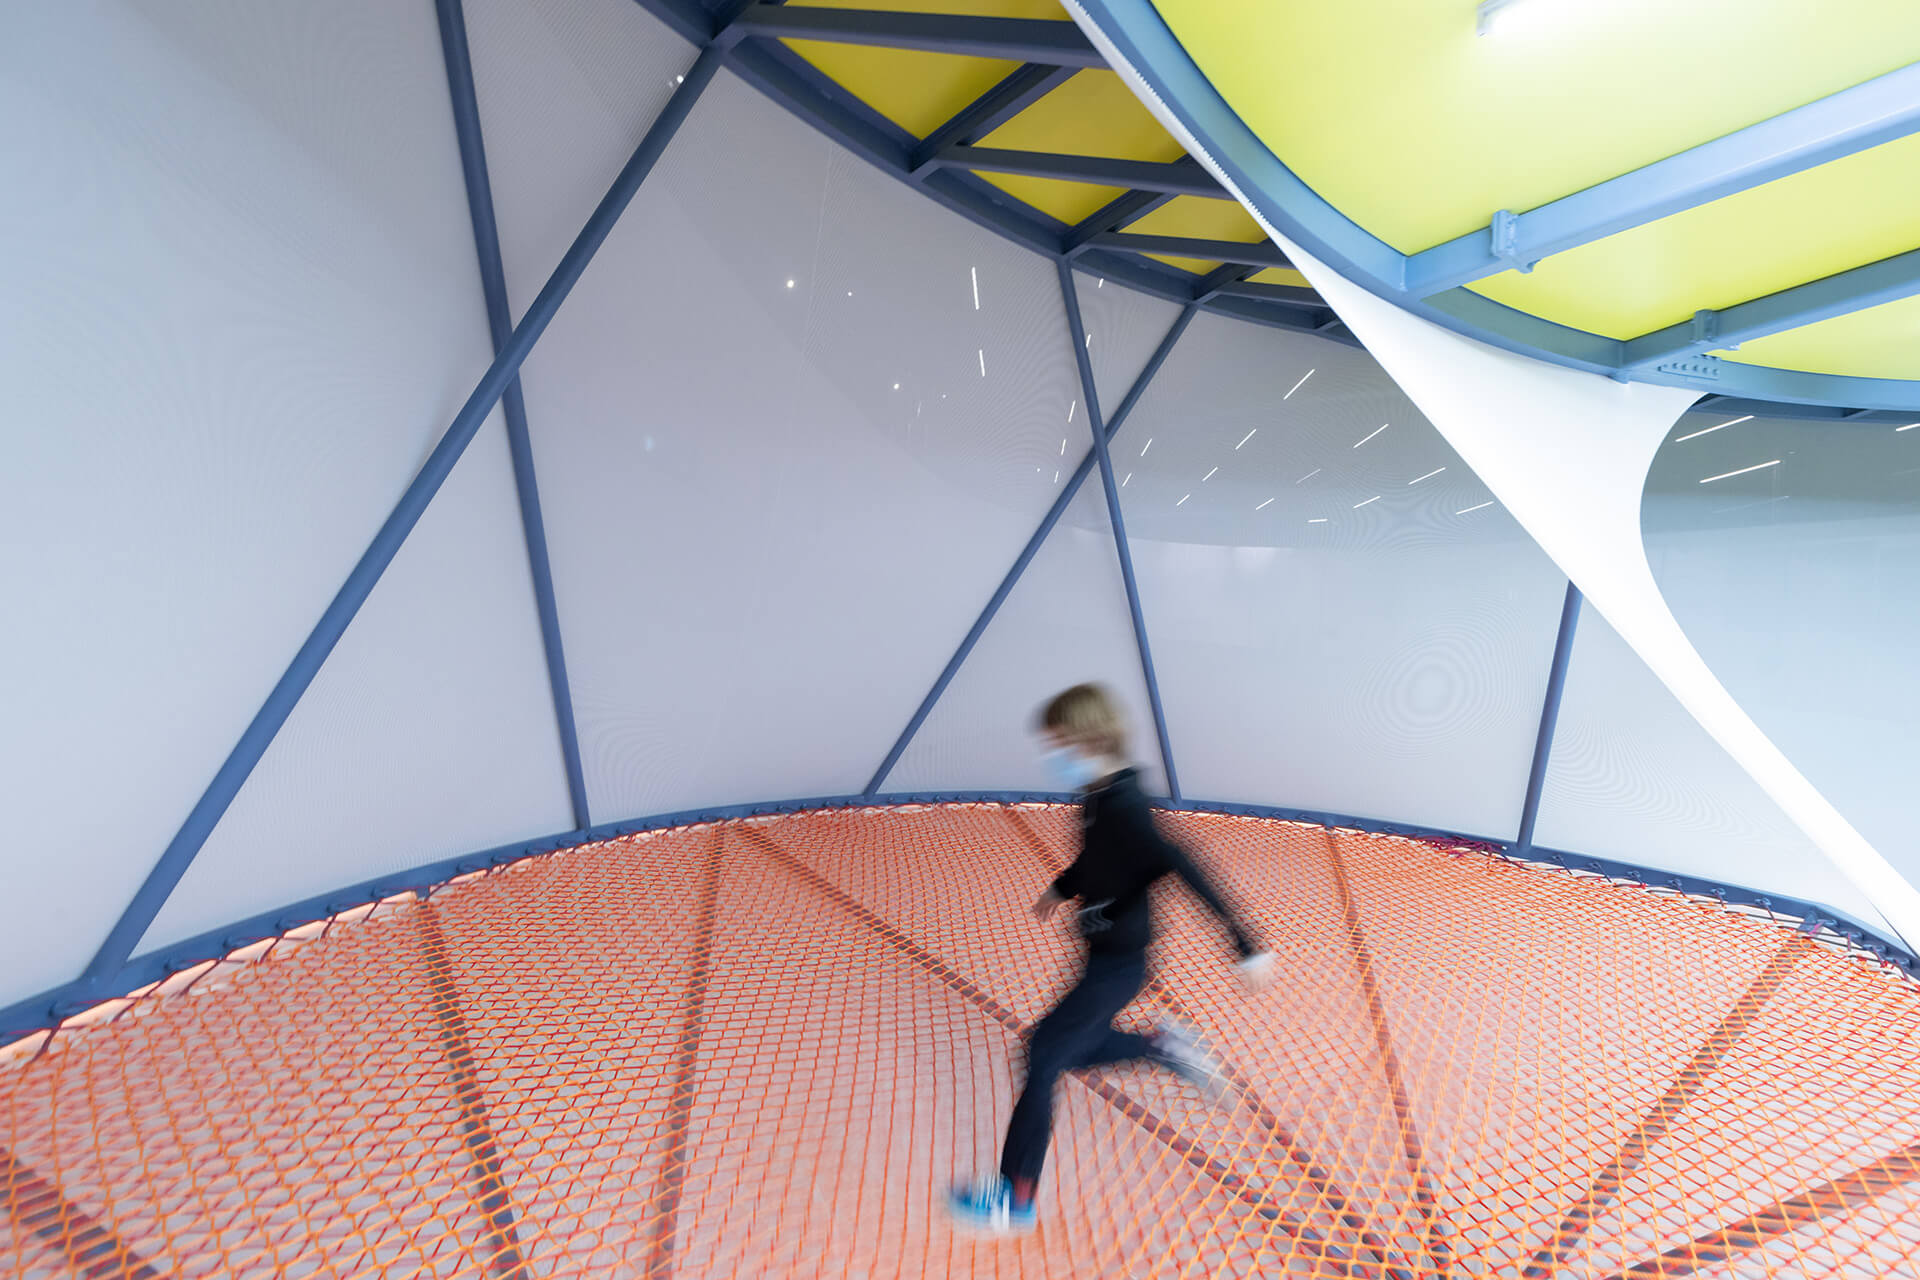 Beeline by SO-IL transforms the Amanda Levete-designed MAAT building | MAAT | Lisbon, Portugal | STIRworld